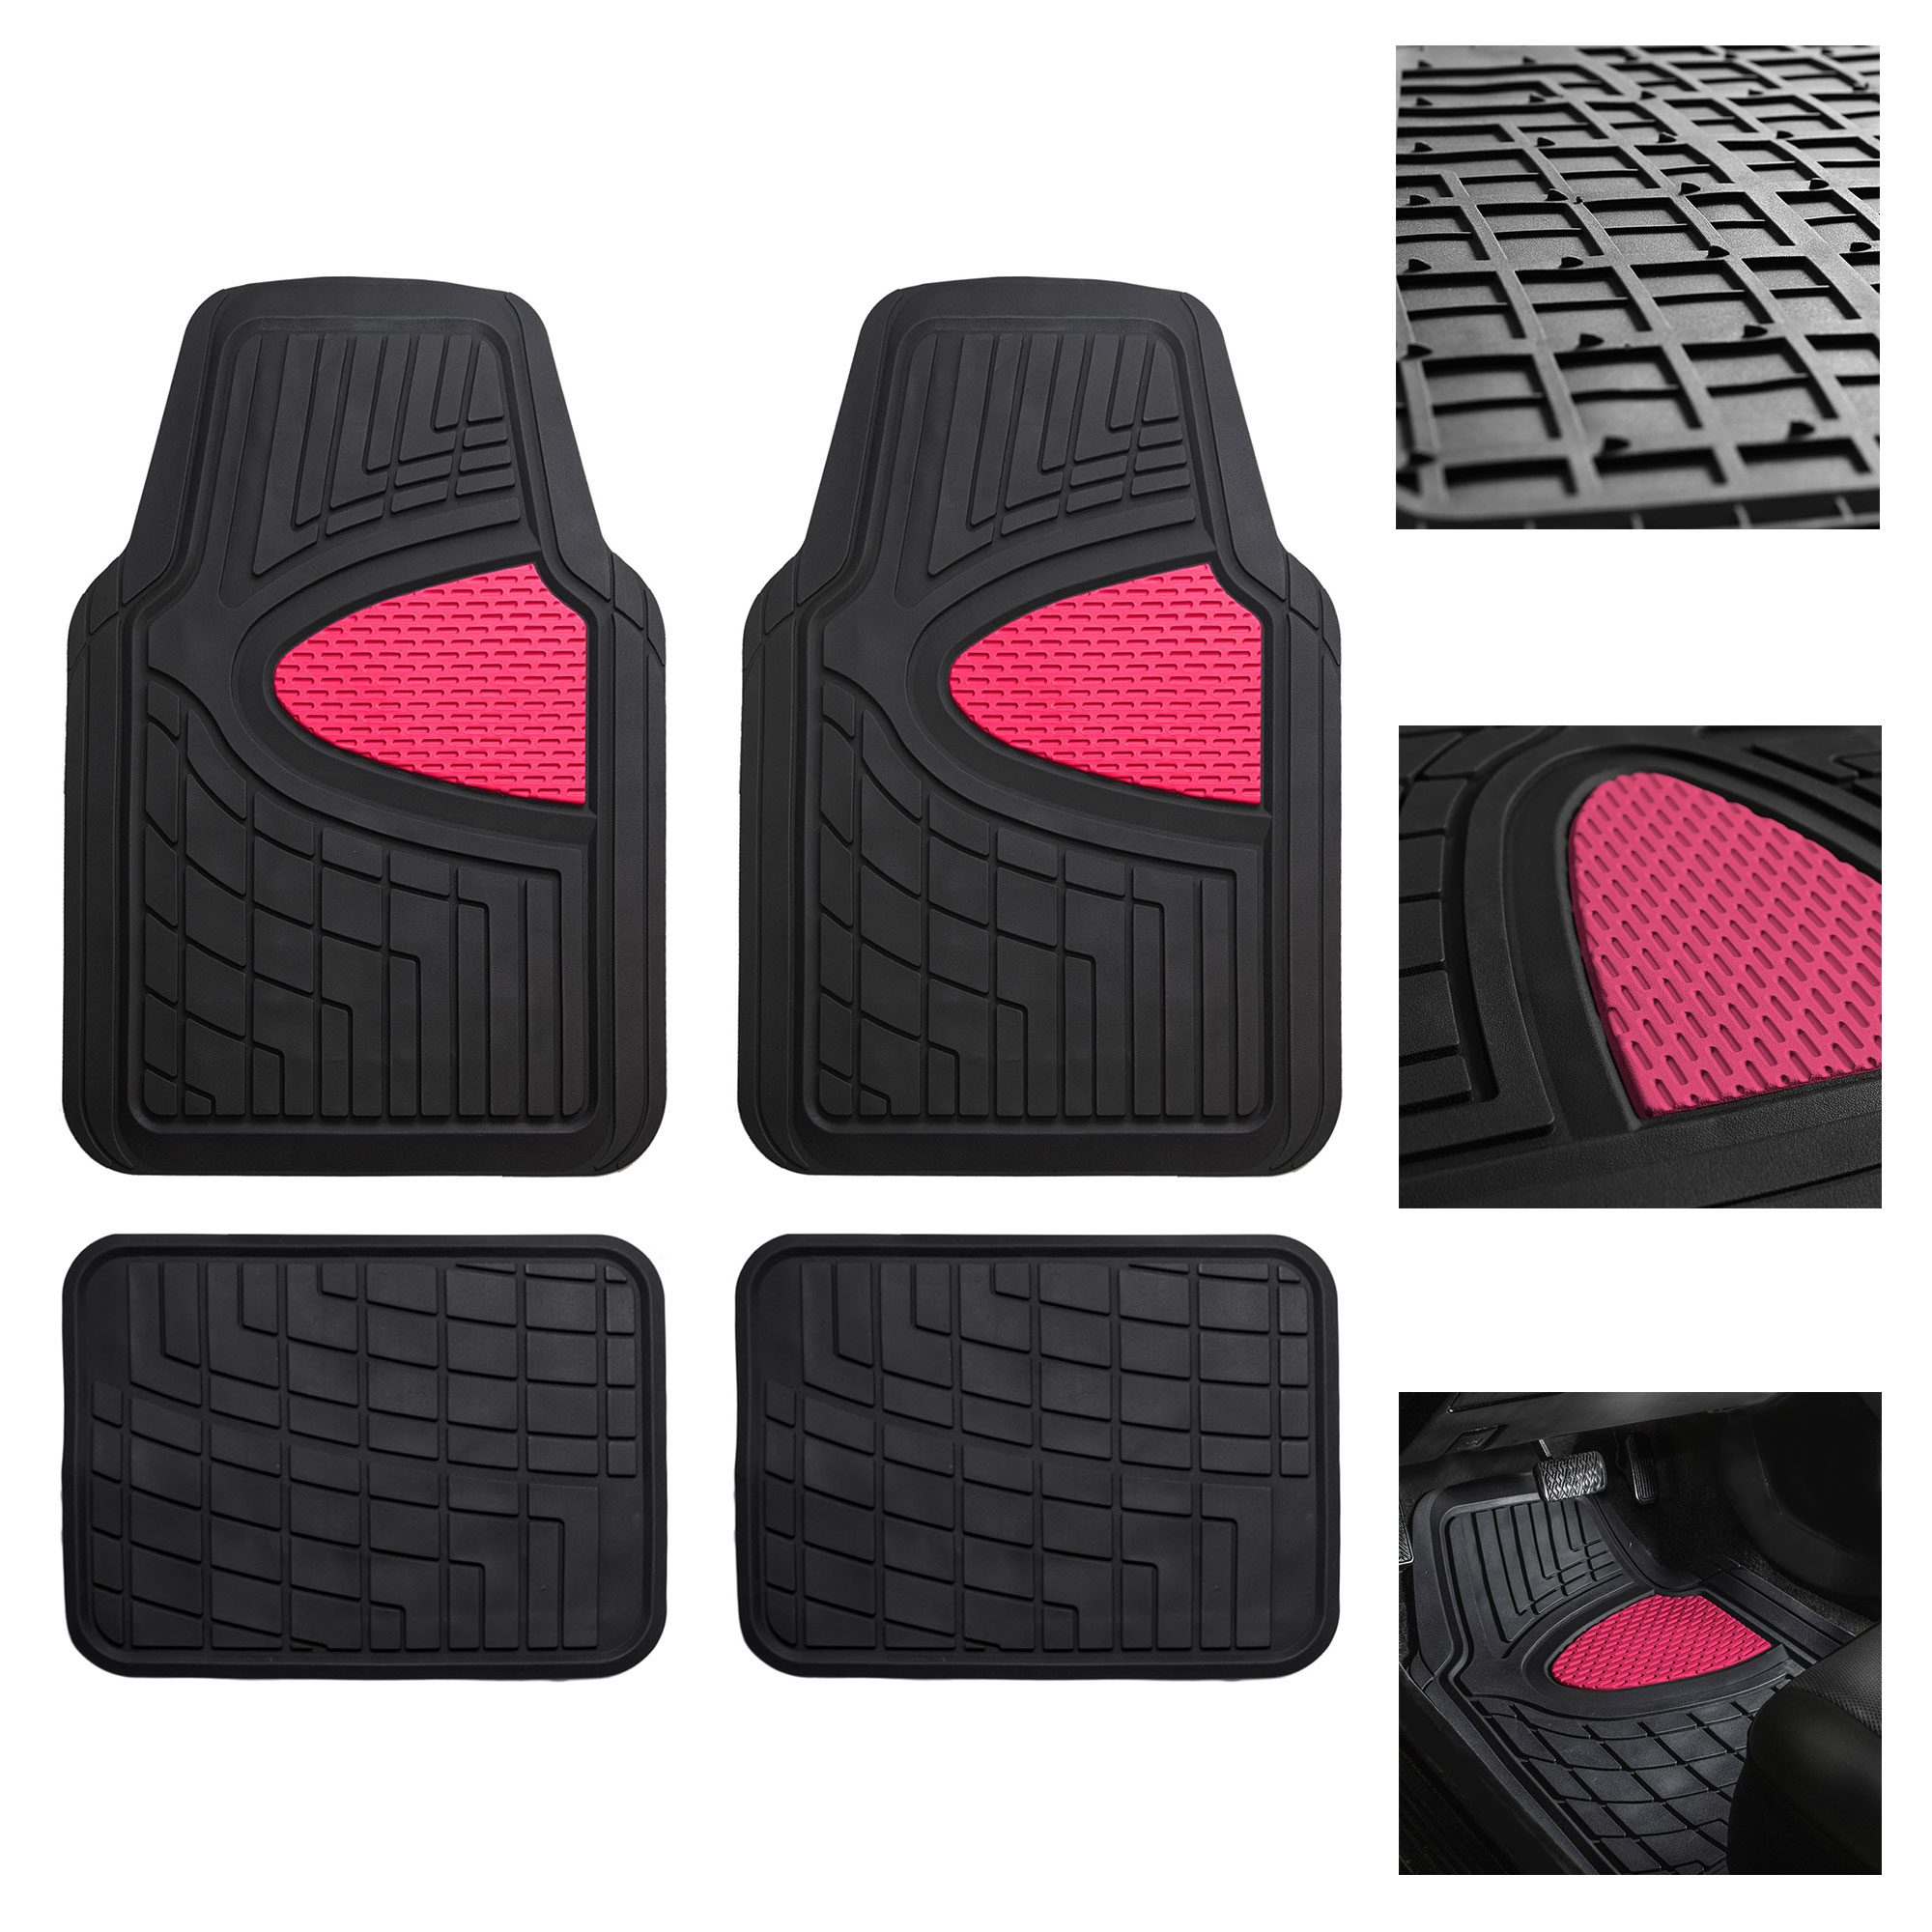 FH Group Premium Tall Channel Rubber Floor Mats for Auto with Free Gift, 7 Colors